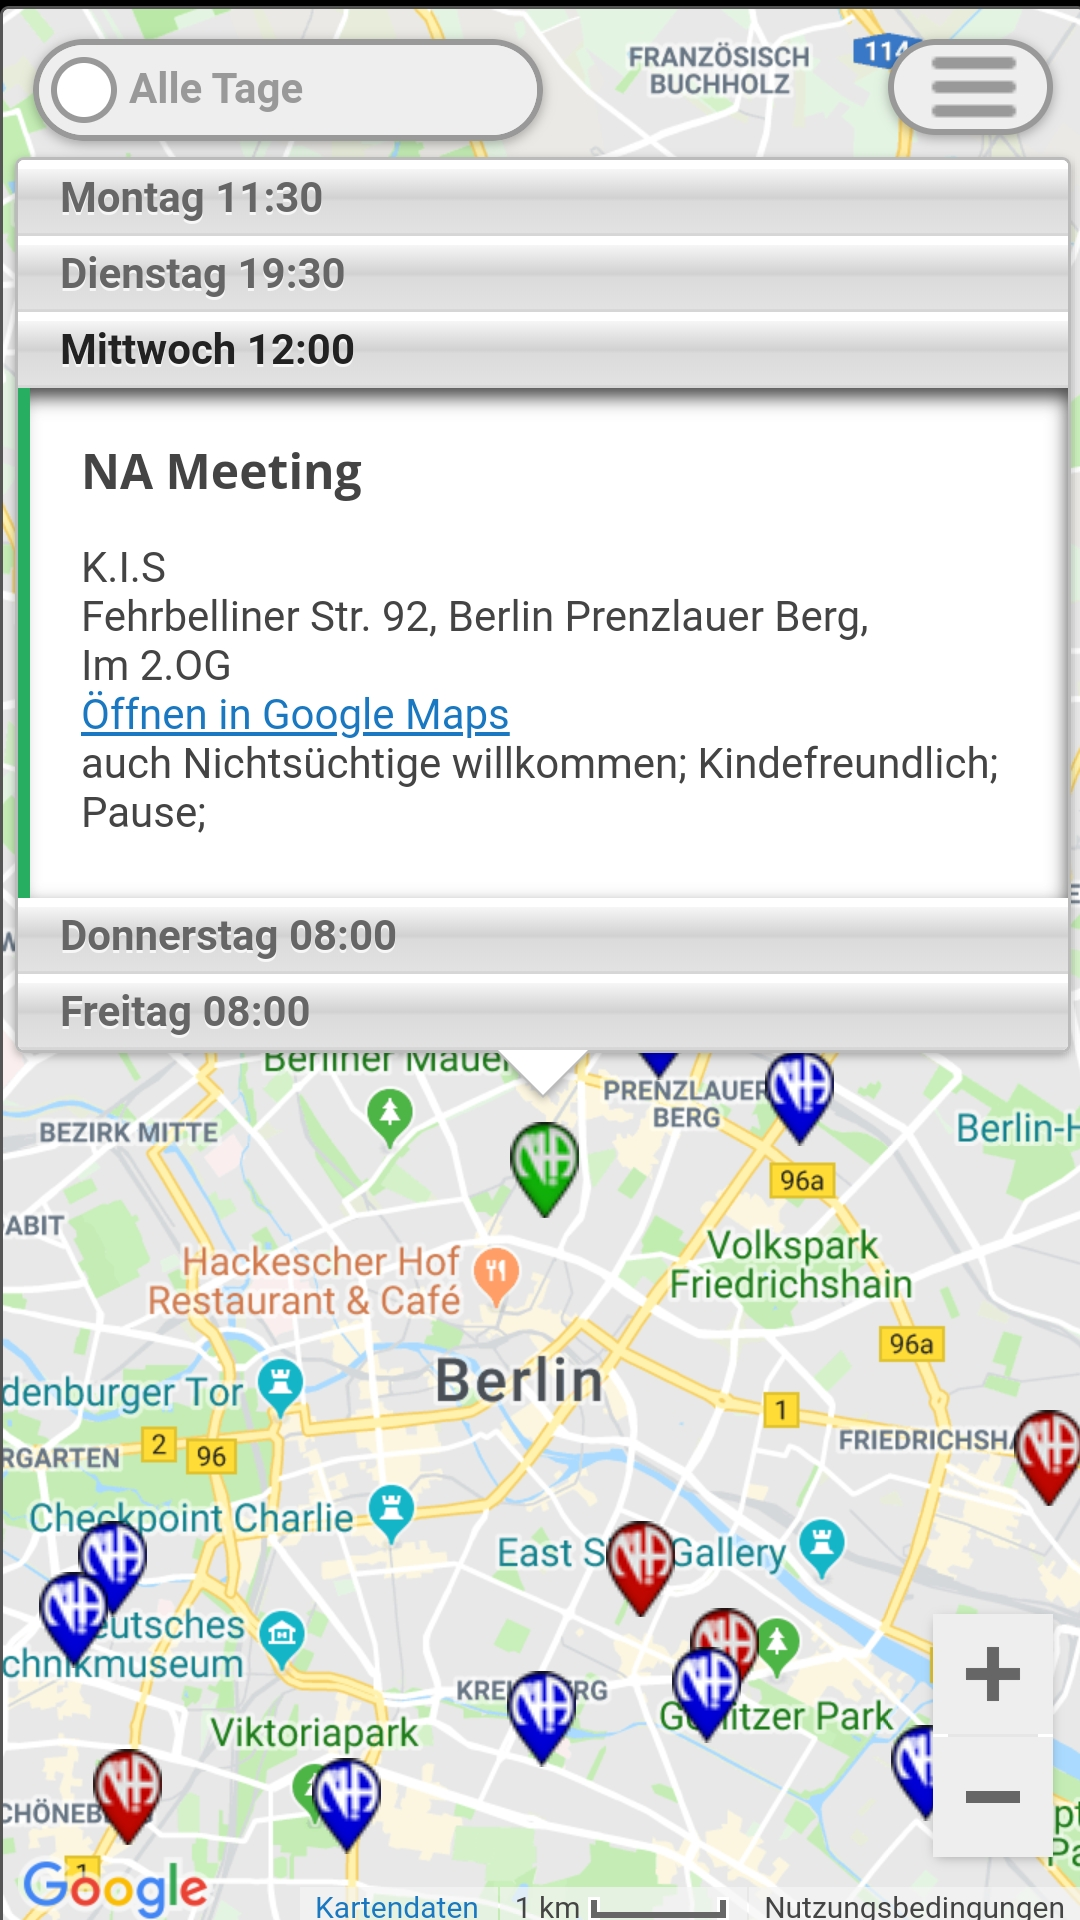 Click on a marker to bring up details of all meetings at that location